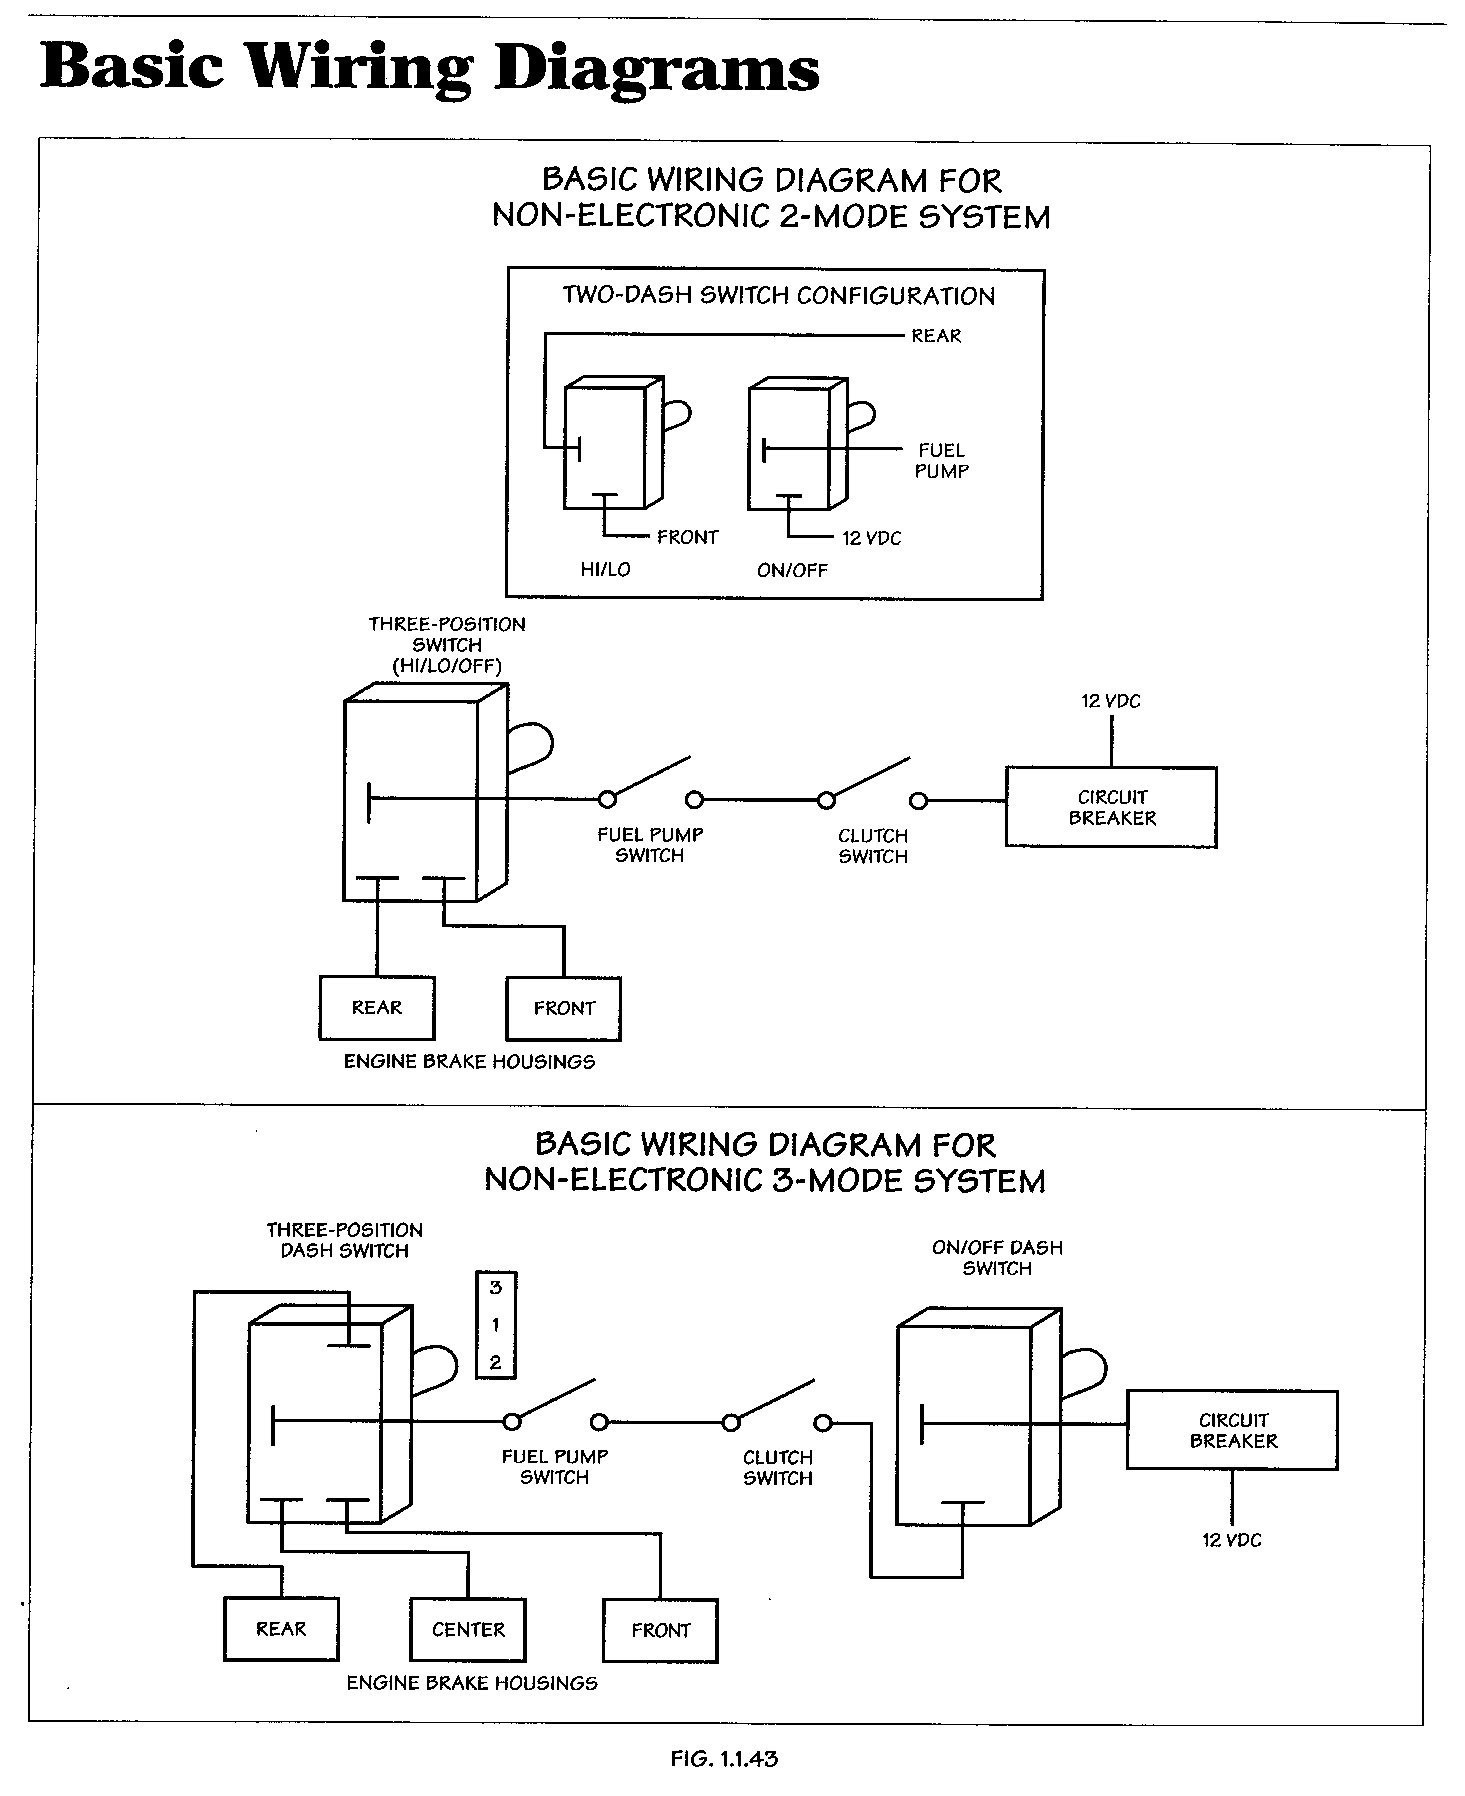 mack truck battery wiring diagram mack truck alternator wiring diagram 1999 mack truck wiring diagram | wiring diagram